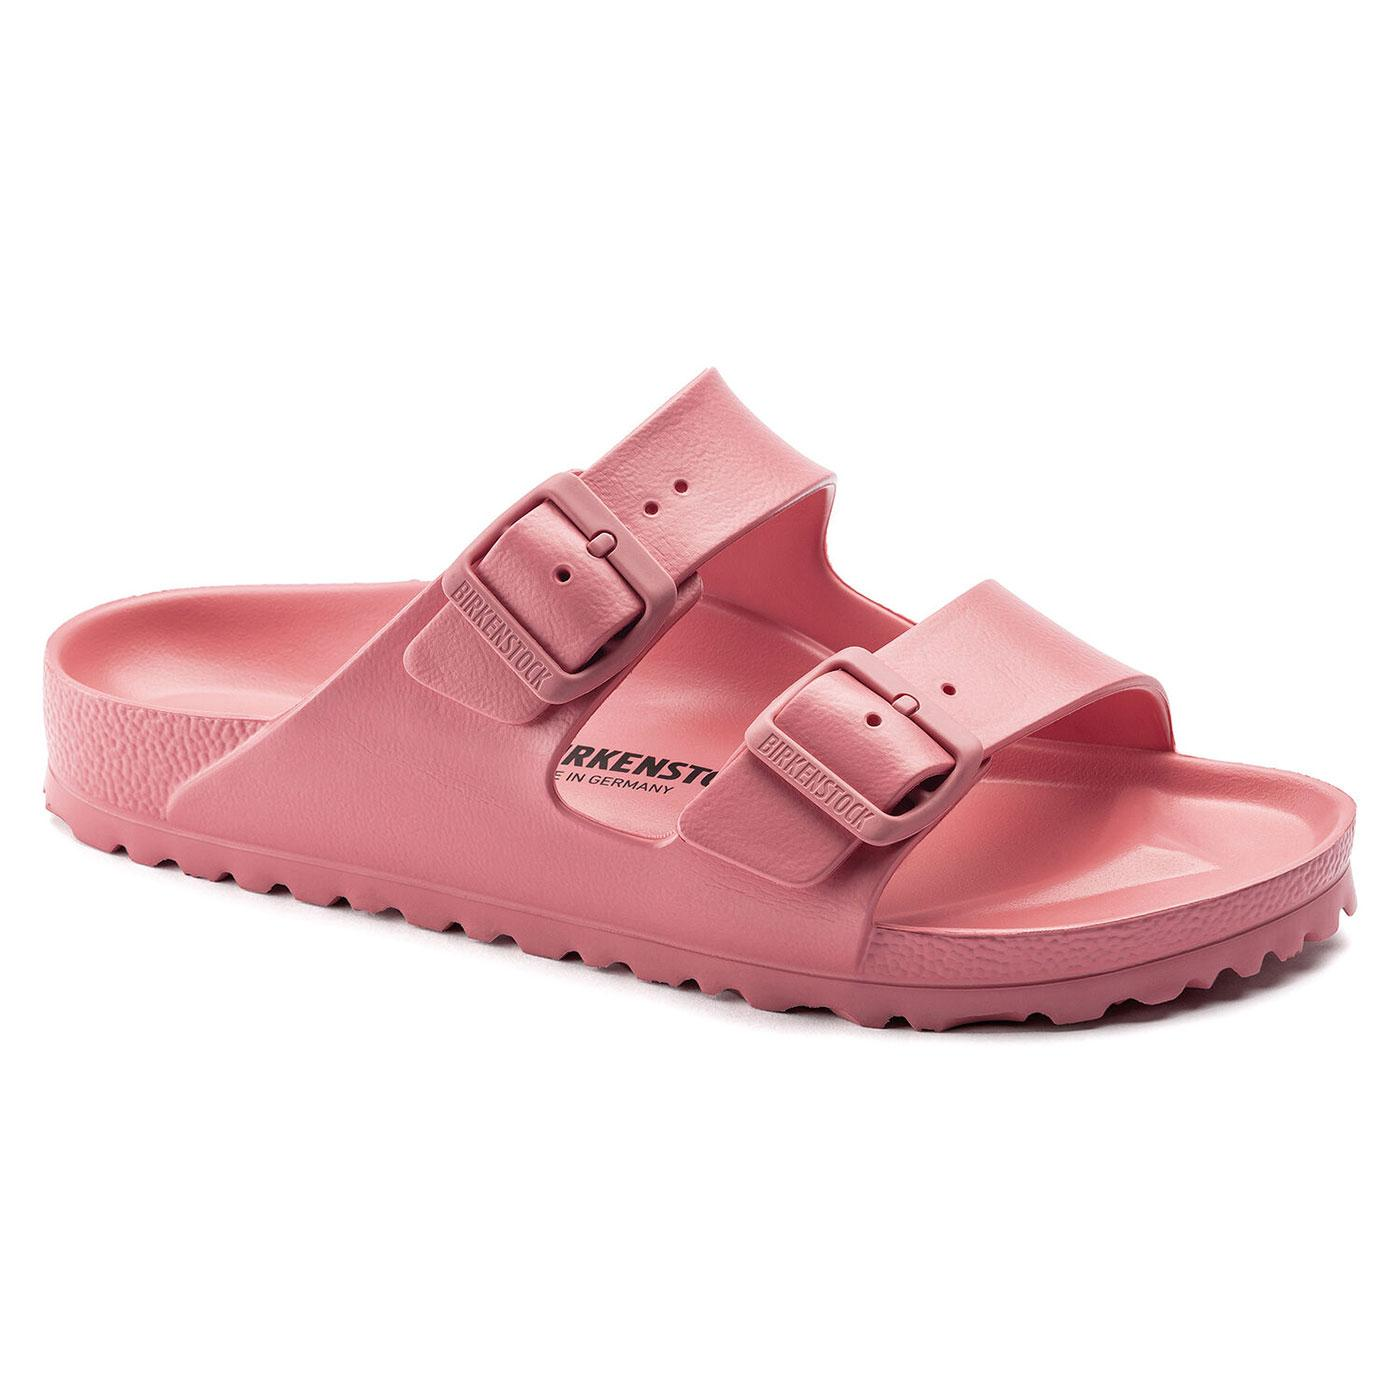 Arizona EVA BIRKENSTOCK Womens Lightweight Sandals